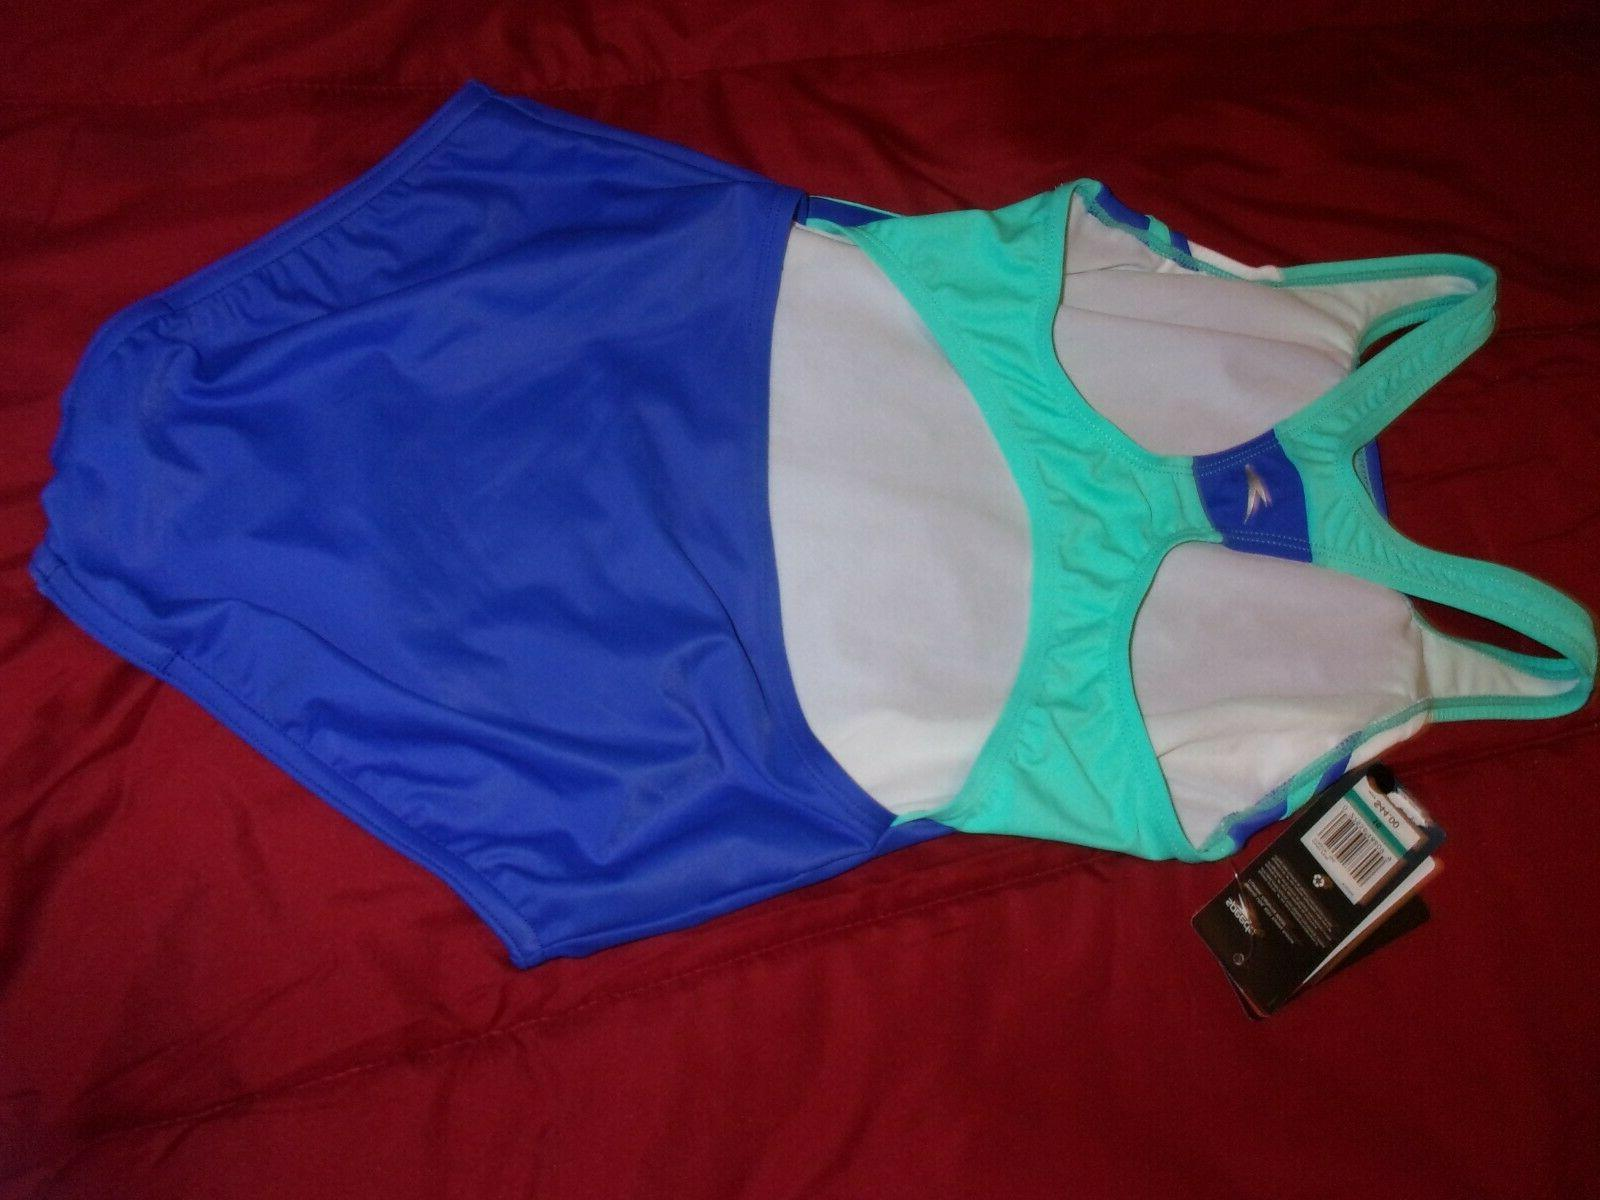 Speedo Girls' Swimsuit 7142076 size 16